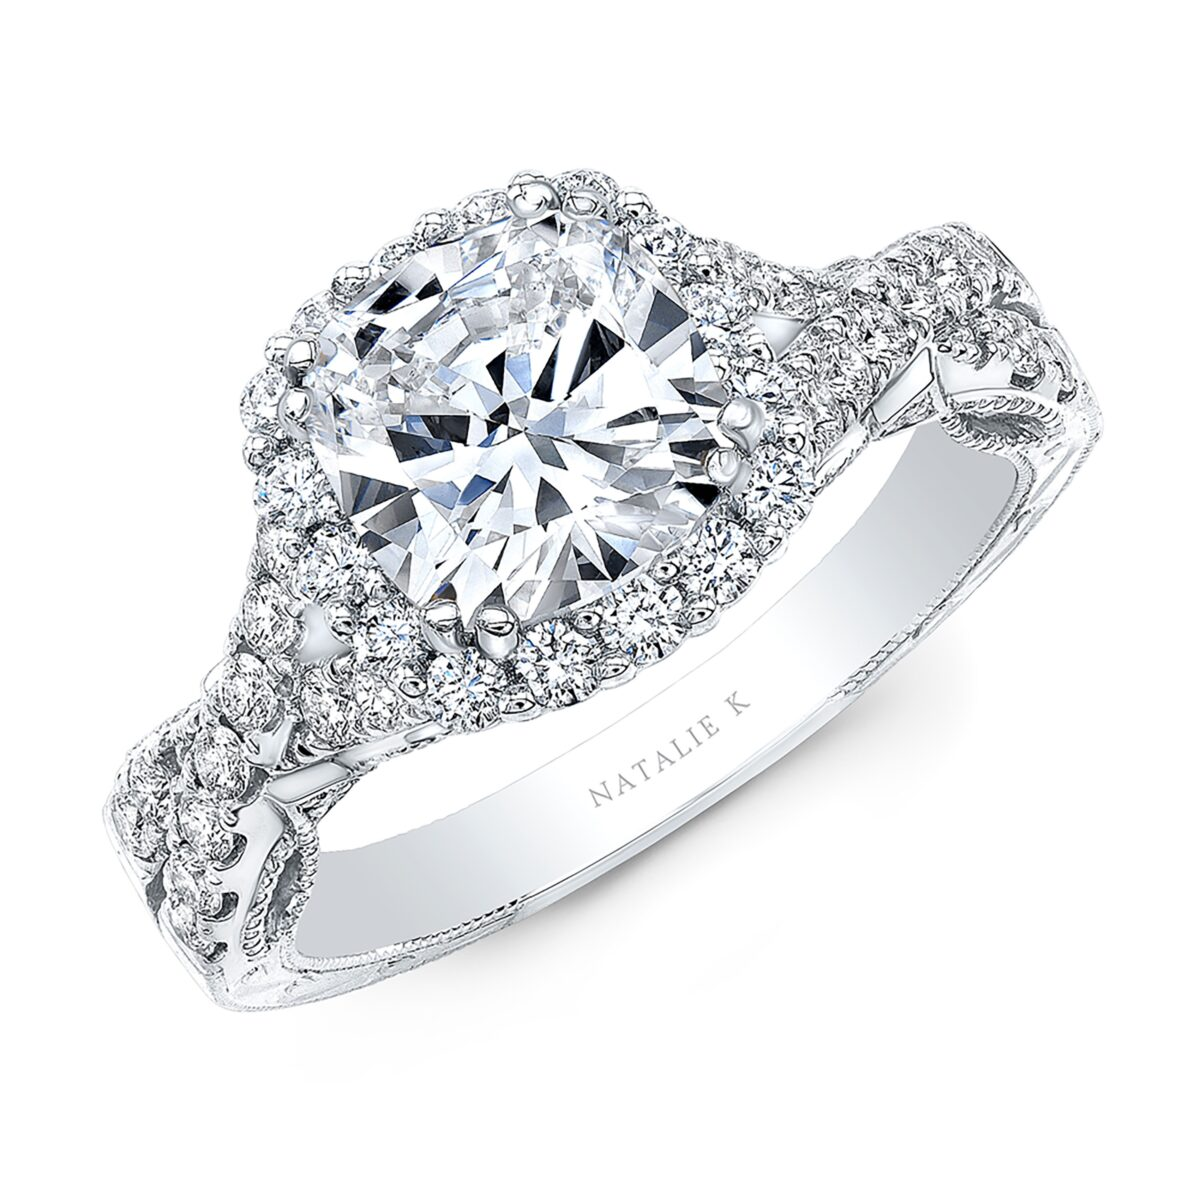 jewelry engagement in natalie la contact about diamond store bridal k gabriel rings services bastrop steves